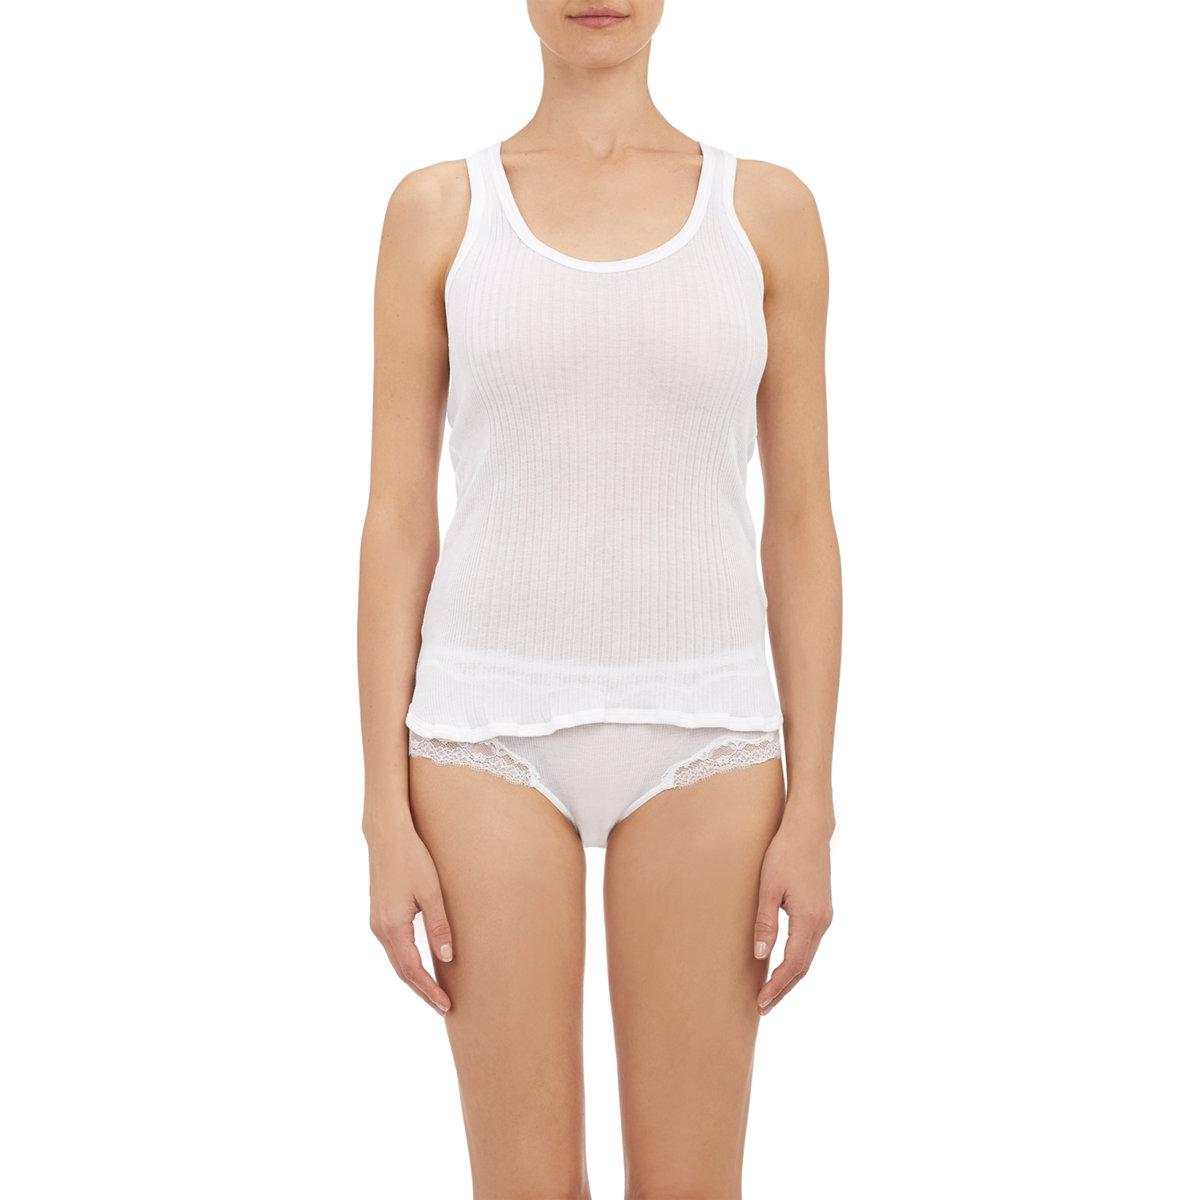 Sale Fast Delivery Womens Madison Cotton Tank Zimmerli Marketable Pay With Visa For Sale qrm2yXWKqM